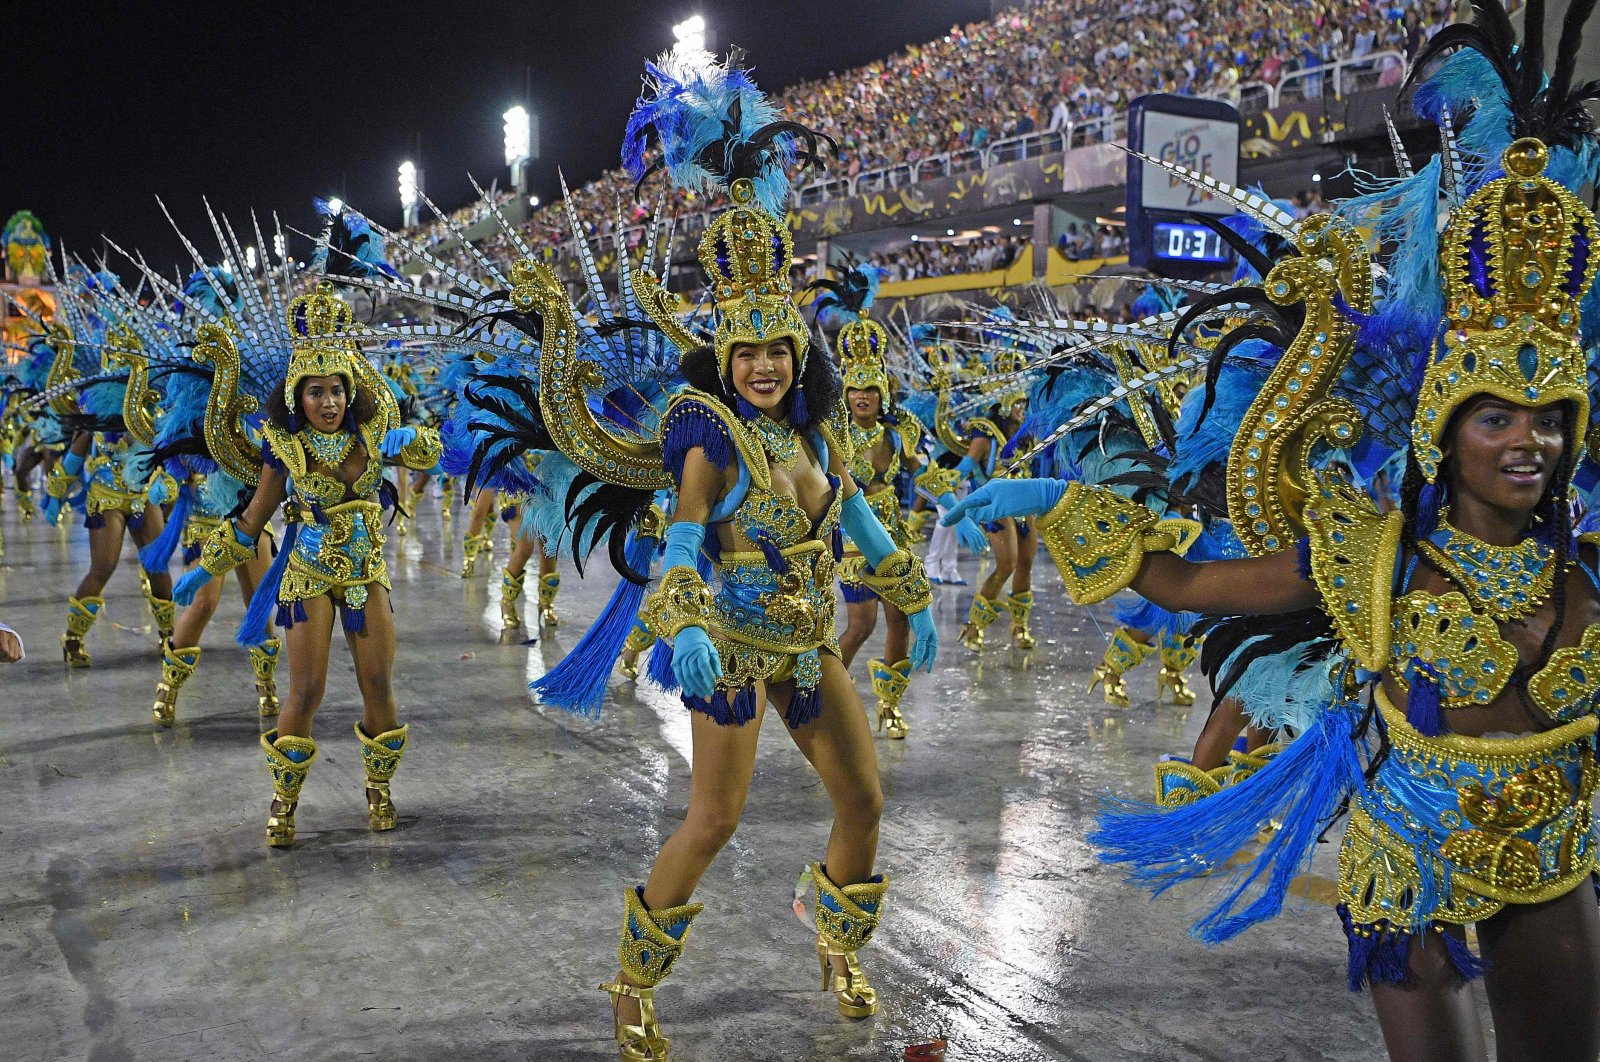 Members of Vila Isabel samba school perform during the last night of Rio's Carnival parade at the Sambadrome Marques de Sapucai in Rio de Janeiro, Brazil, Feb, 24, 2020. (AFP Photo)